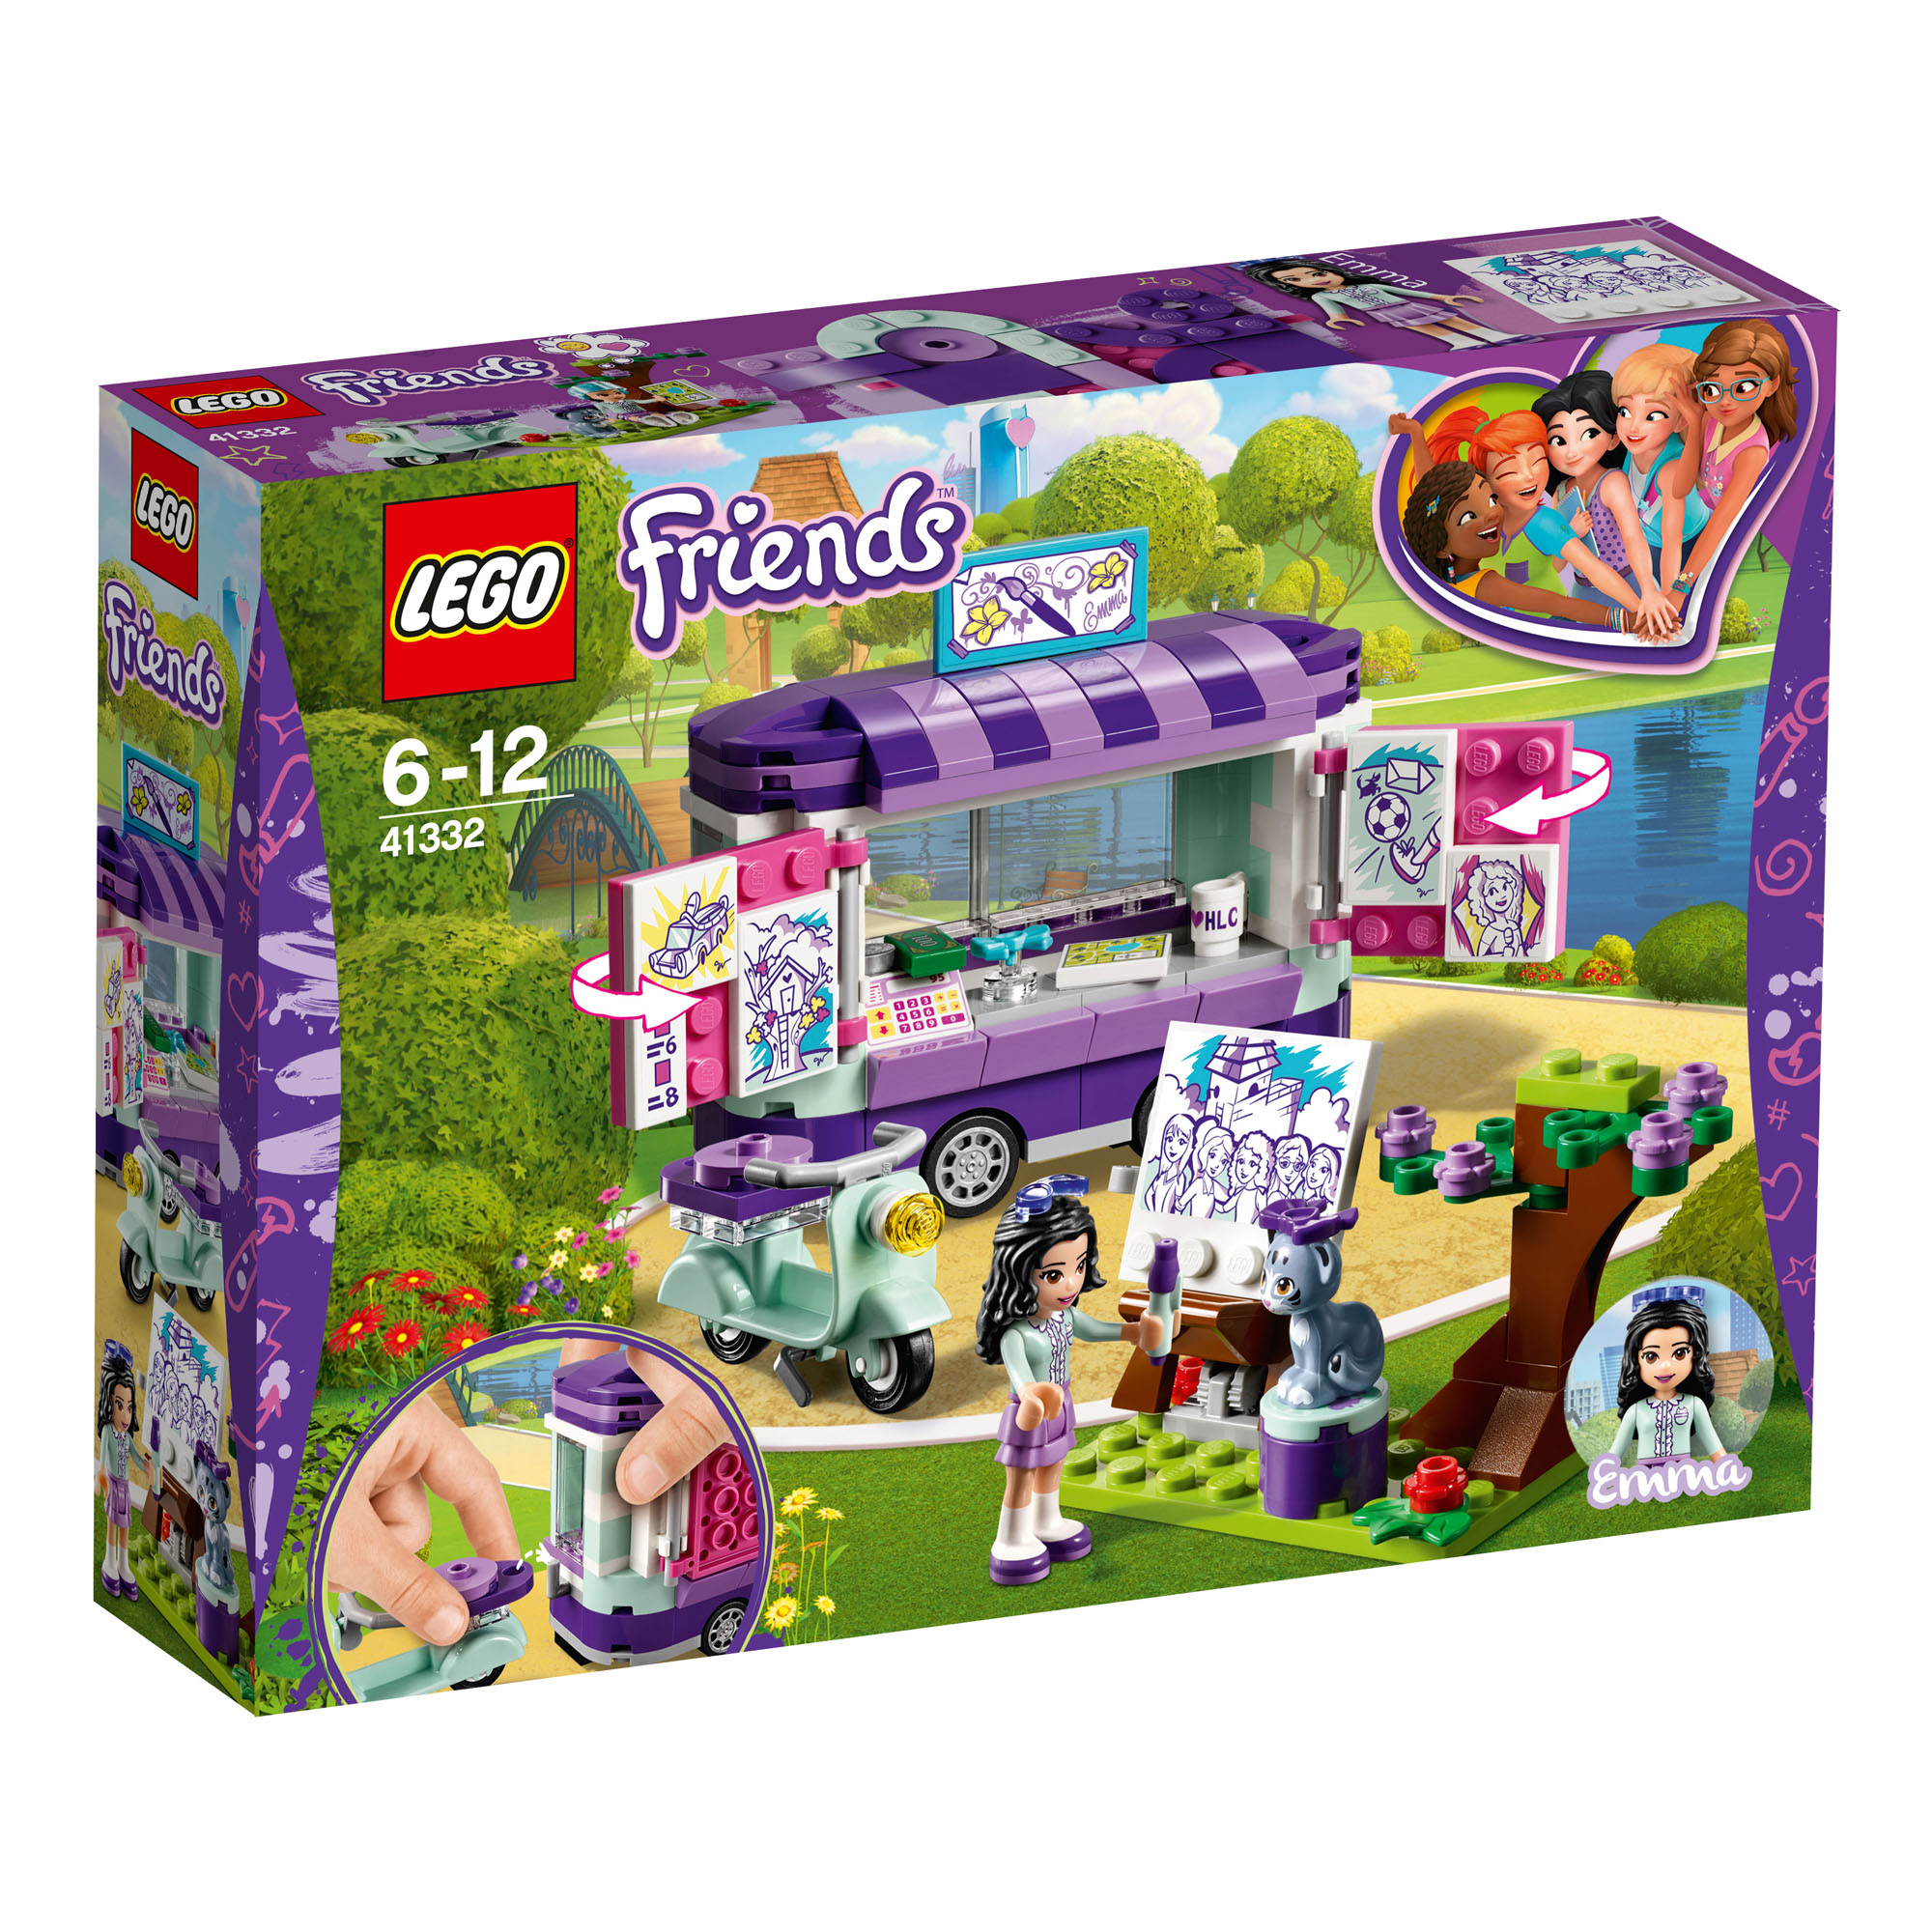 Details about 41332 LEGO Friends Emma's Art Stand Set 210 Pieces Age 6+ New  Release For 2018!